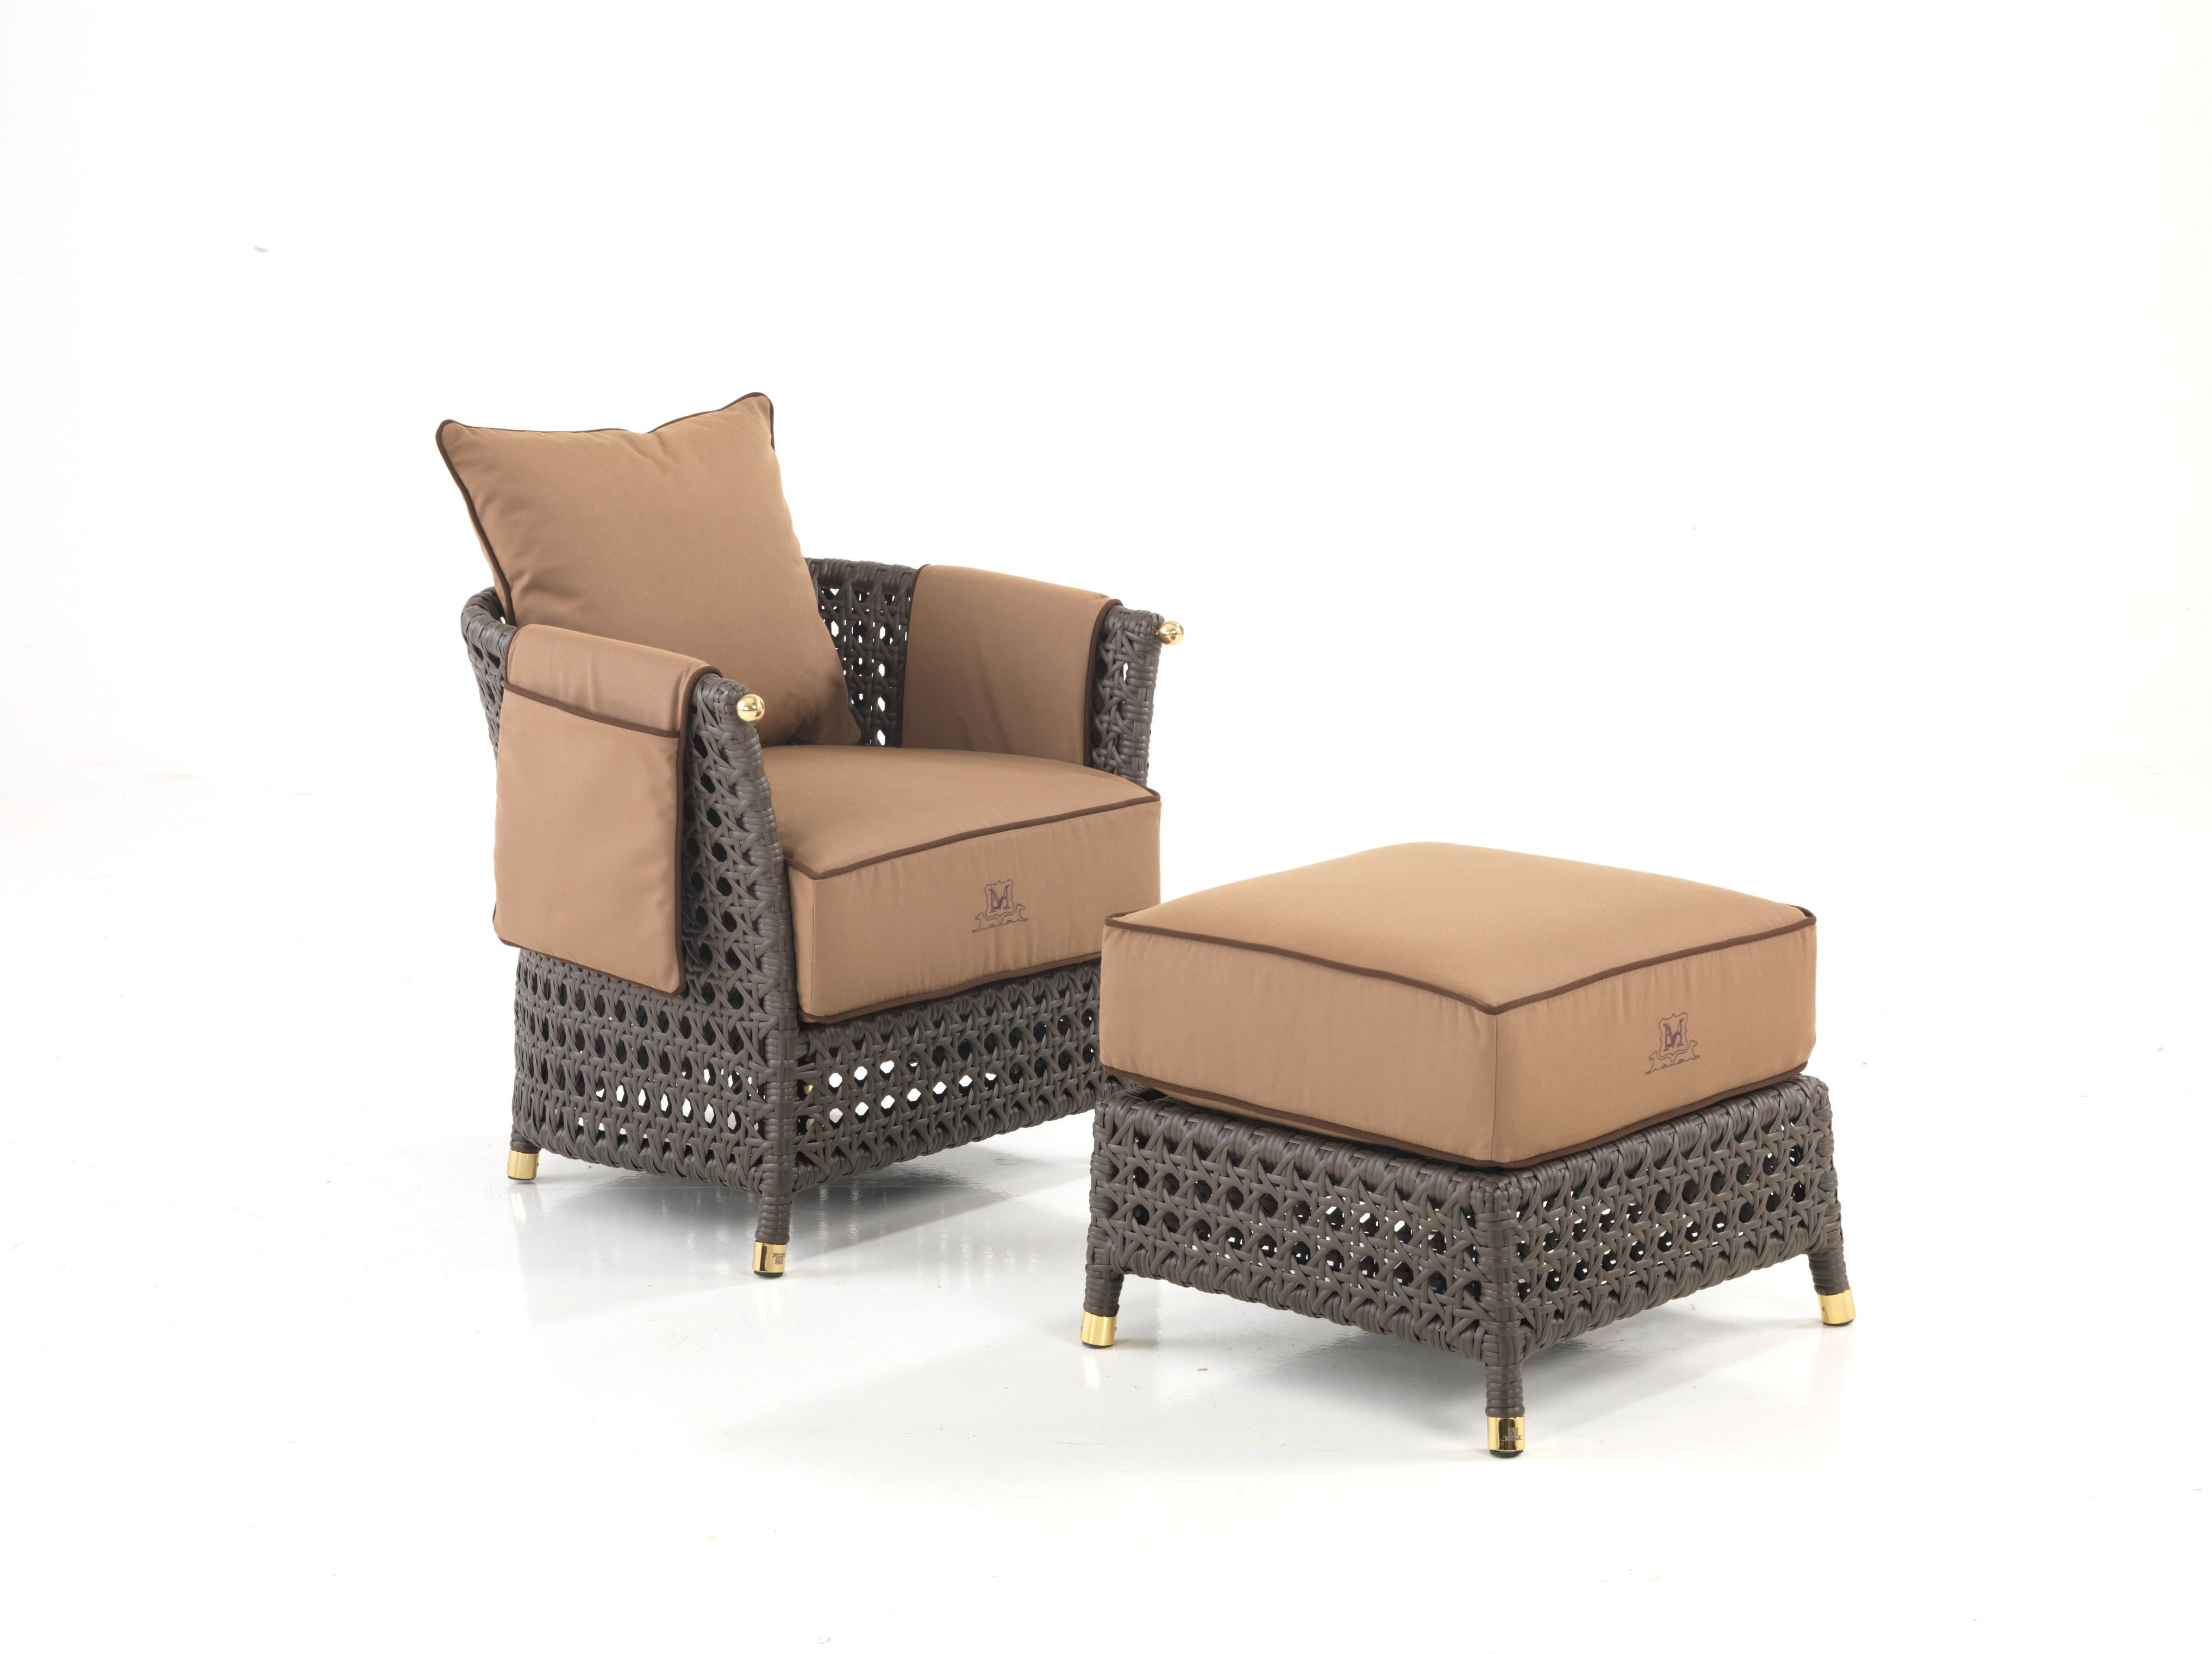 patio df beige today garden product overstock broyerk home set furniture piece shipping rattan free outdoor